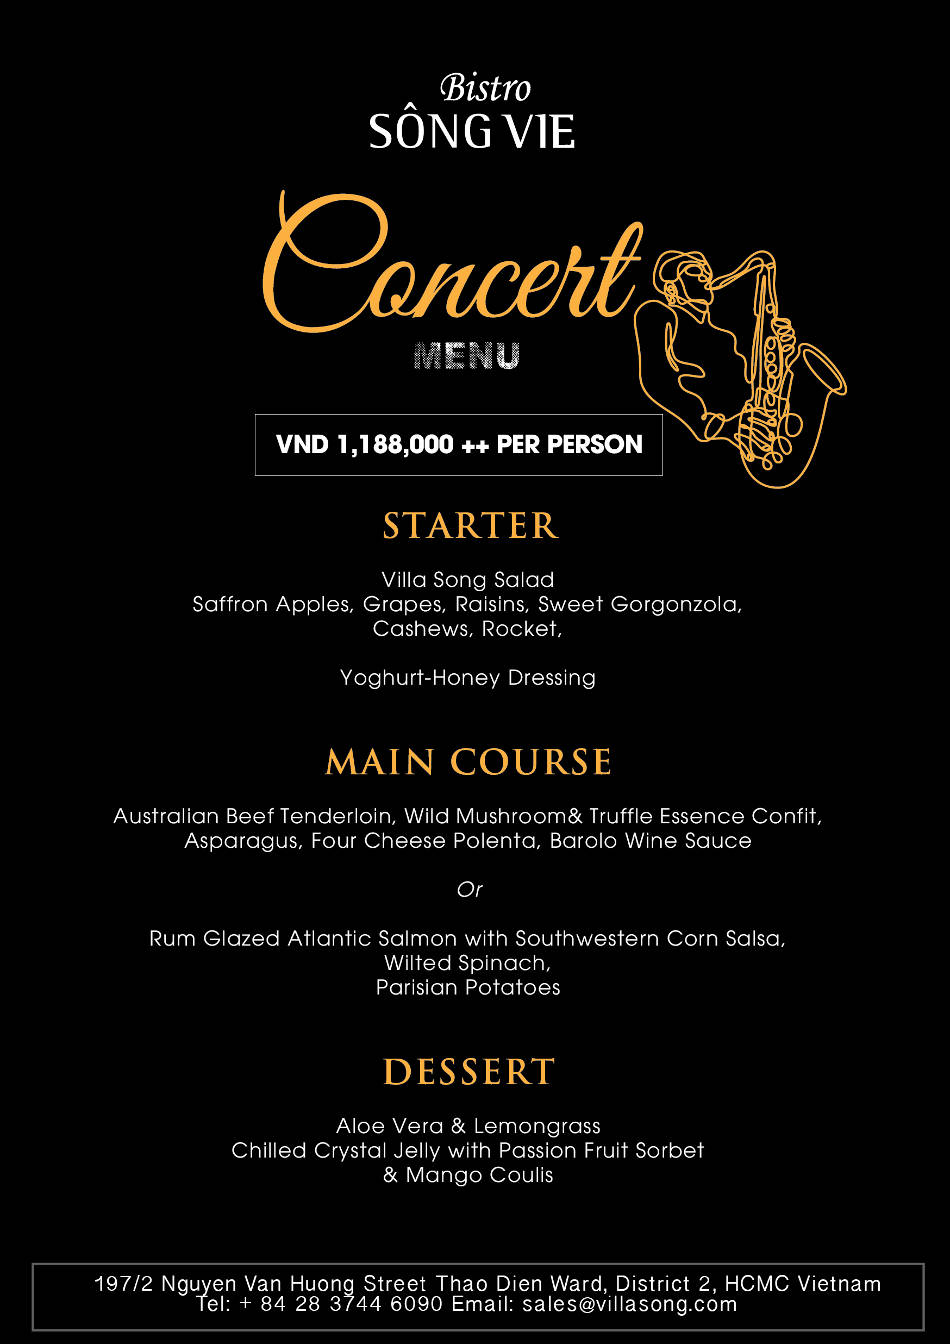 Villa Song Saigon Jazz concert menu